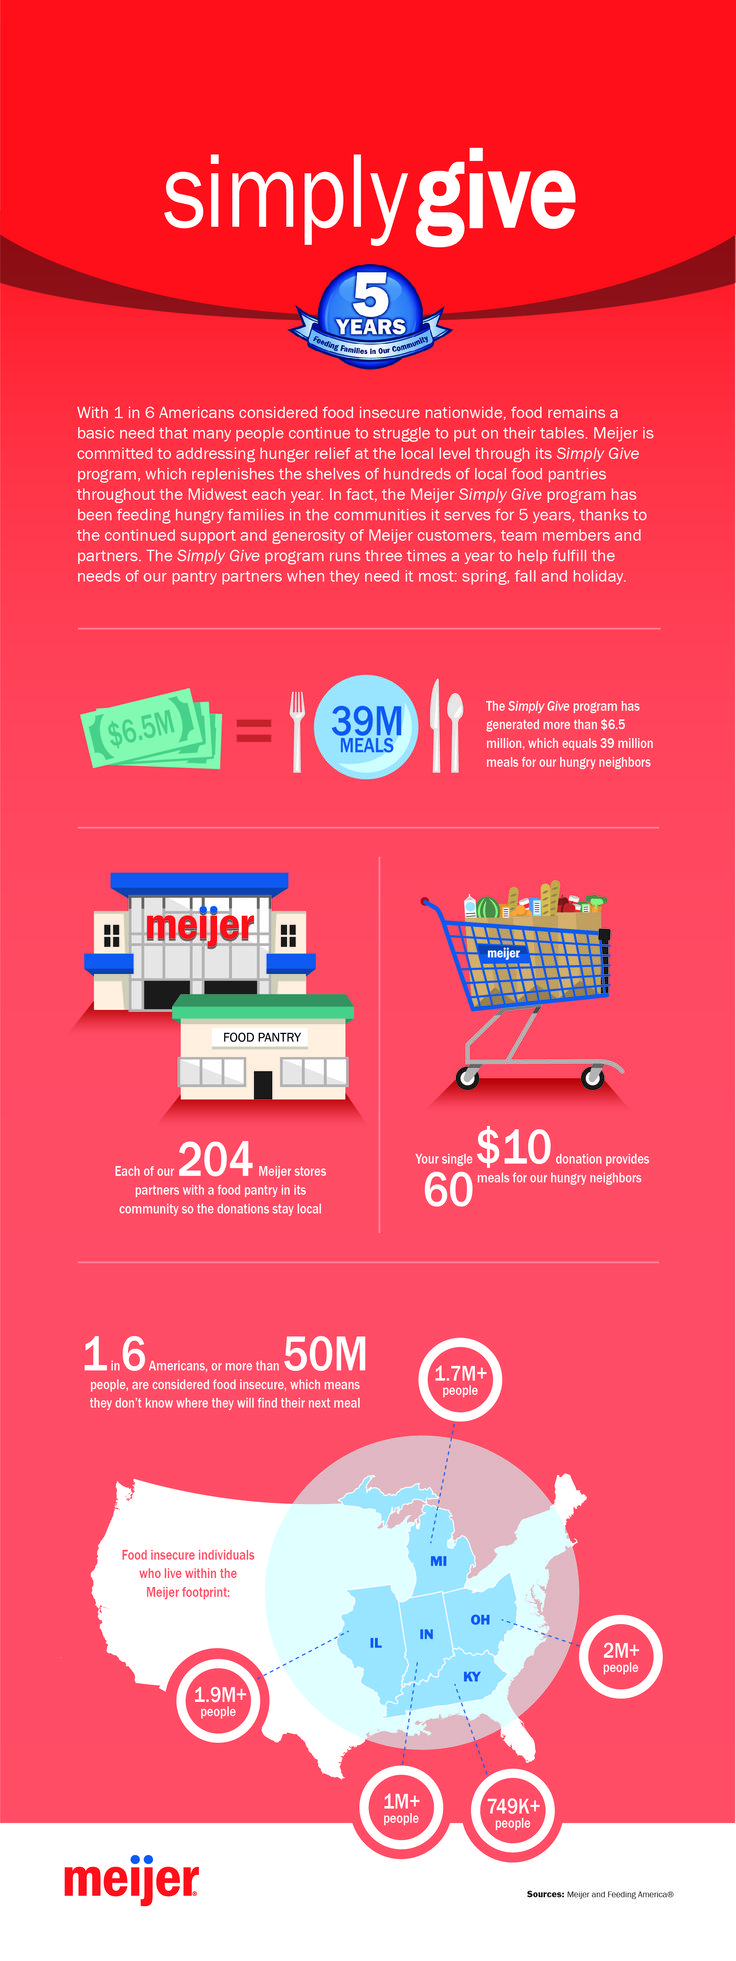 Meijer celebrates 5 years of feeding hungry families through Simply Give